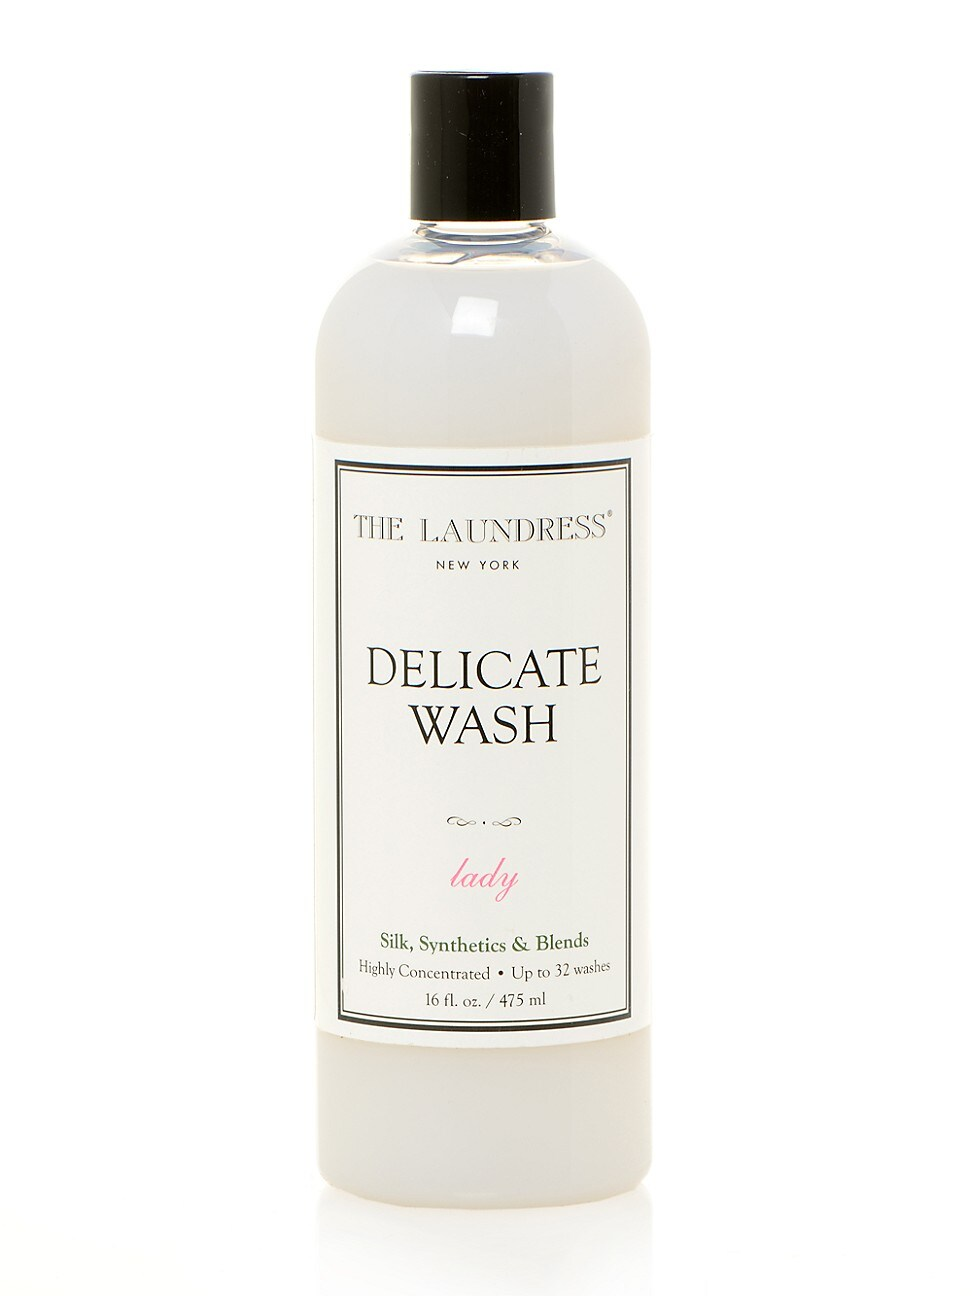 Removes perspiration, body oils, and stains while cleaning and preserving fabrics Scented with amber, bergamot, lavender and musk Plant-derived anionic and nonionic surfactants, stain-fighting and cleaning enzymes (protease, amylase, lipase), mineral-derived cleaning enhancers (sodium gluconate and calcium chloride), essential oils, and fragrance 16 oz. 2.5\\\